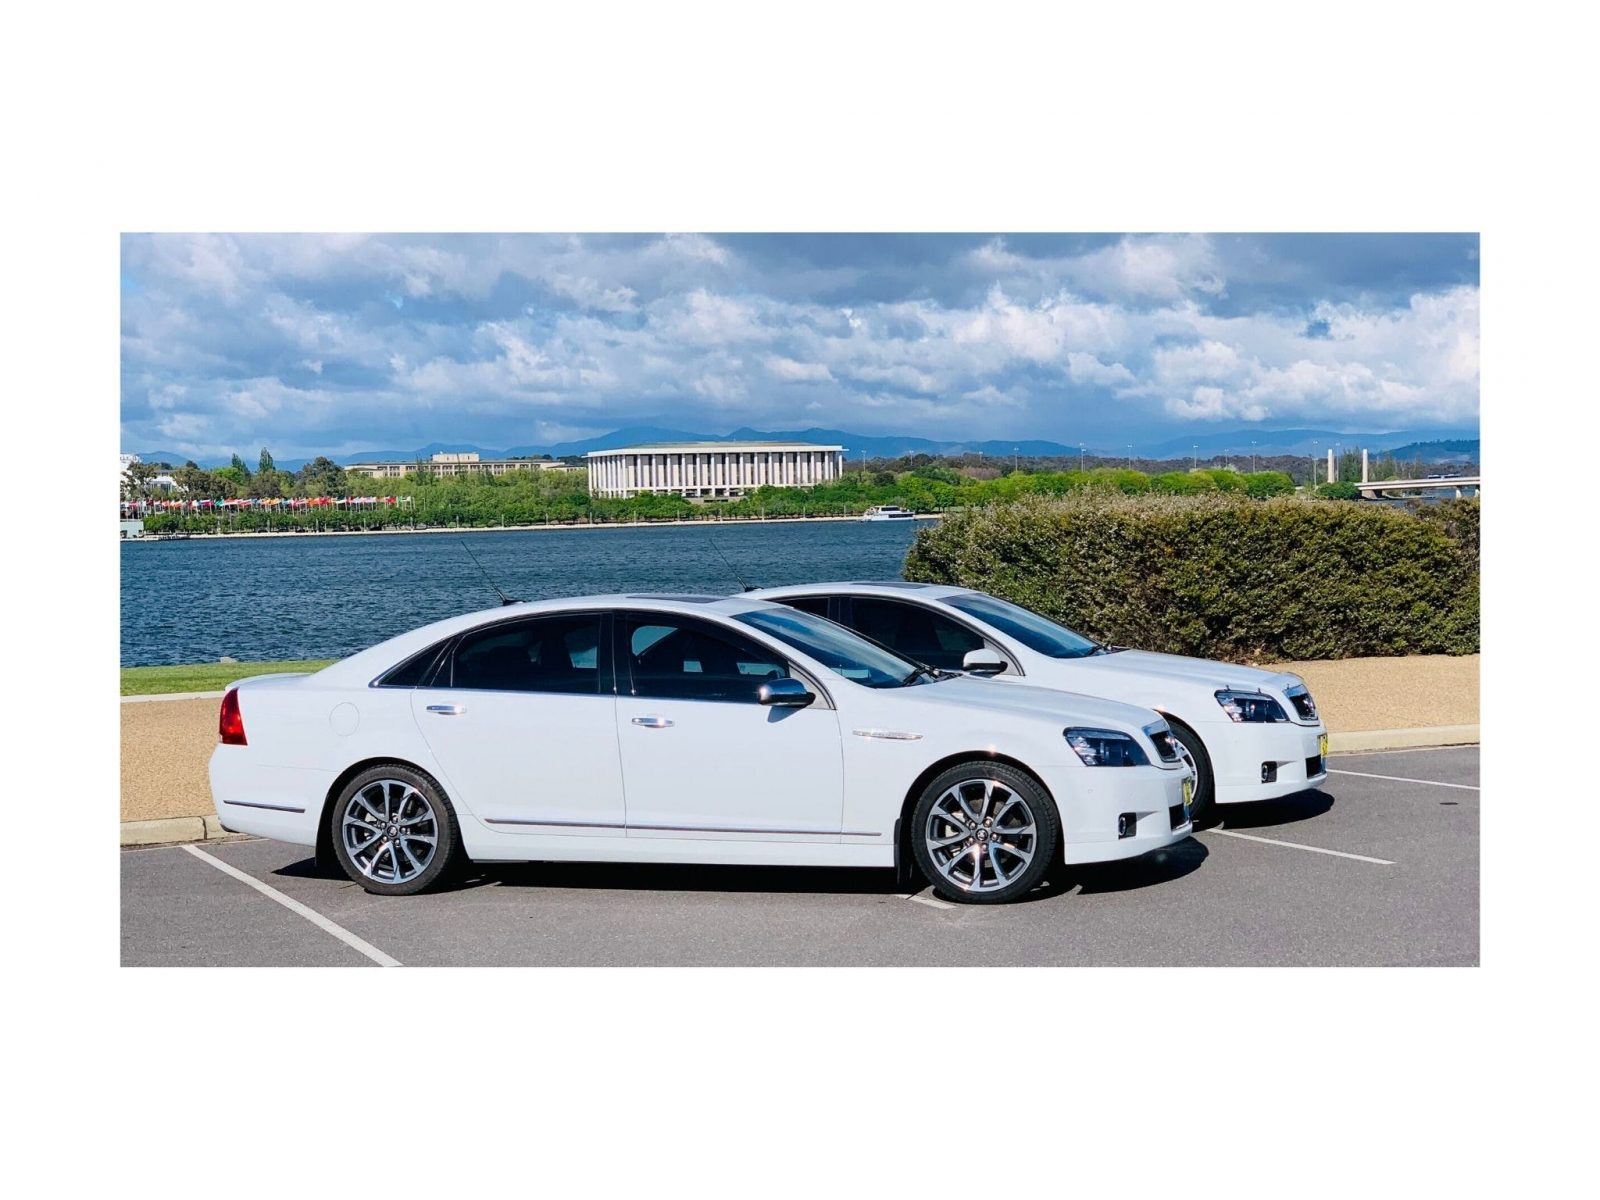 Luxury chauffeur limousines with Lake Burley Griffin and the National Library in the background